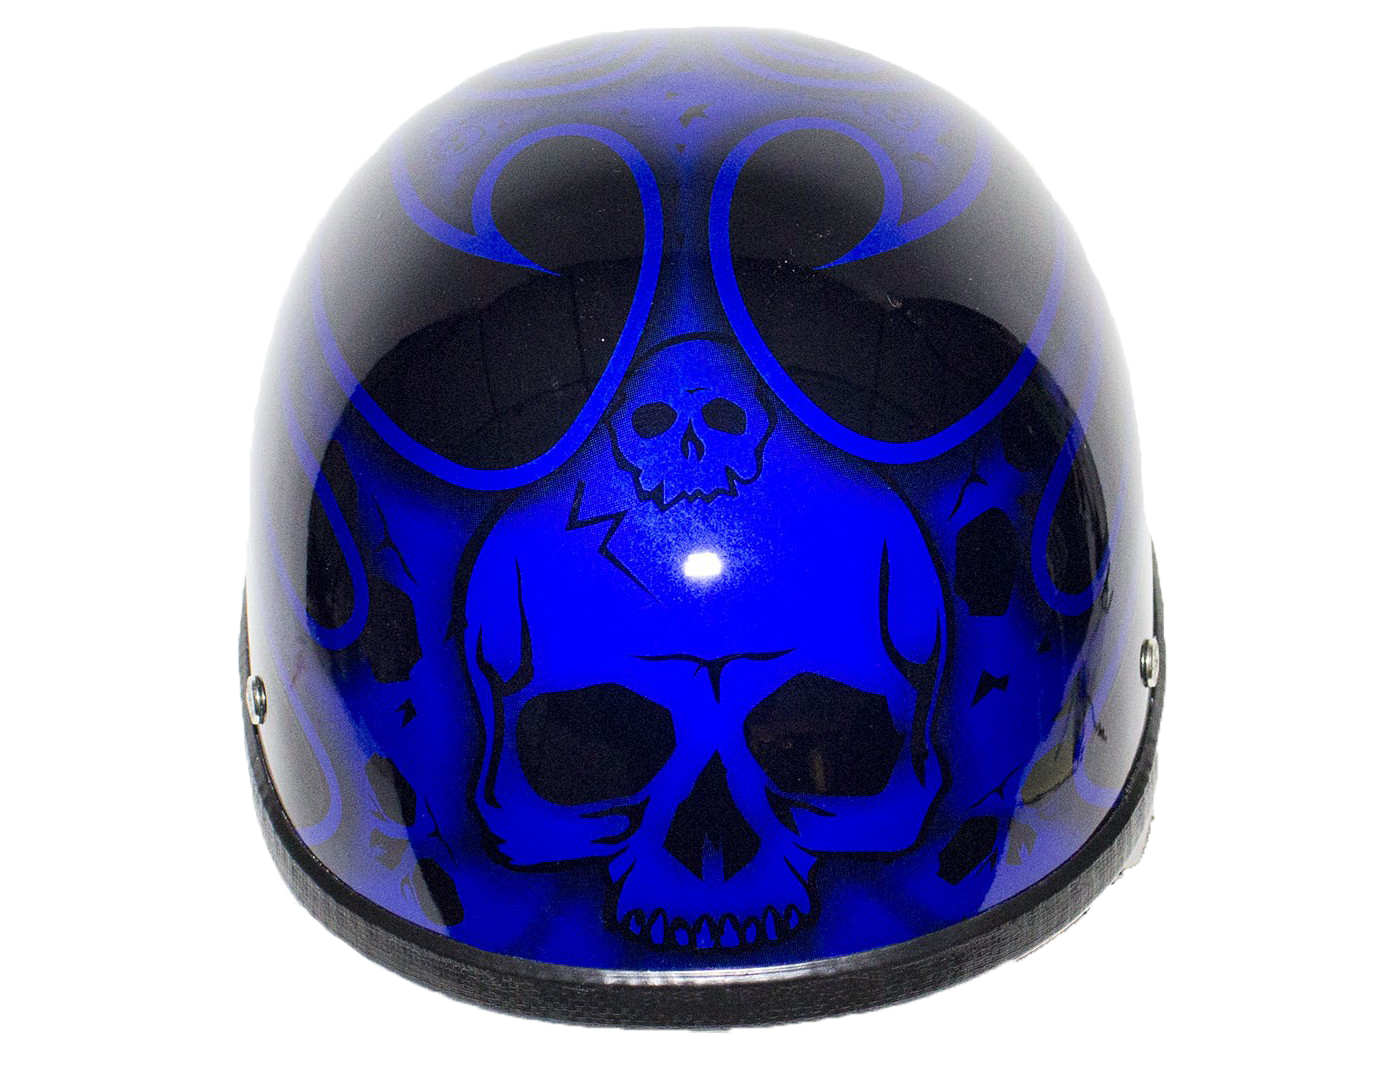 Blue Burning Skull Novelty Motorcycle Helmet - SKU H401-D4-BLUE-DL